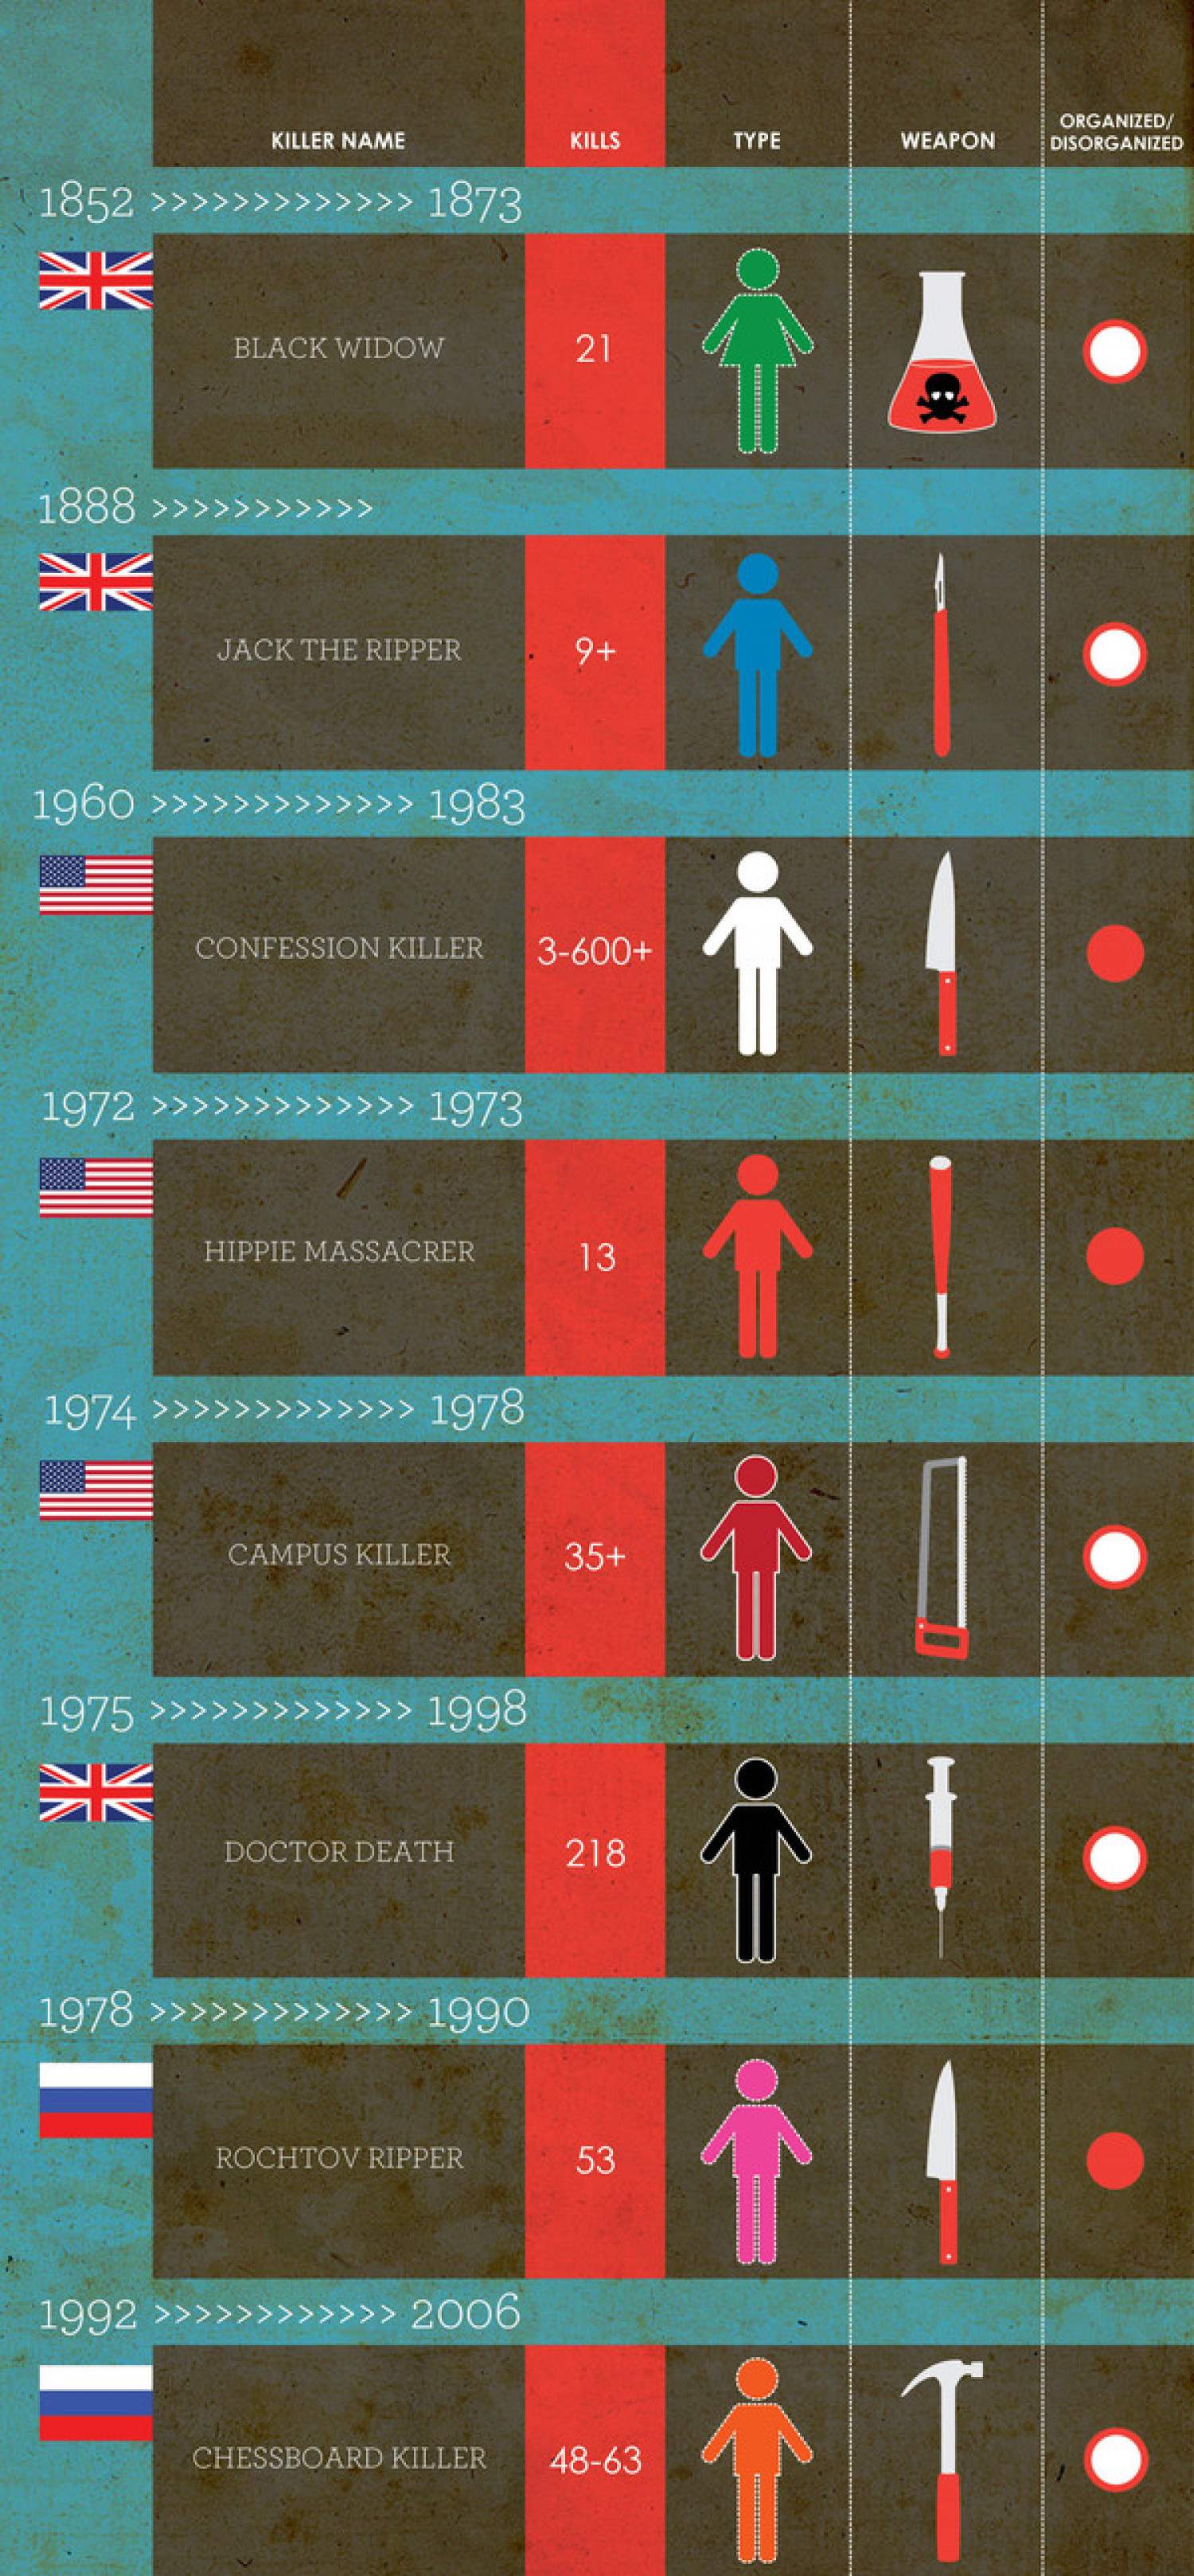 Most Notorious Serial Killers Infographic